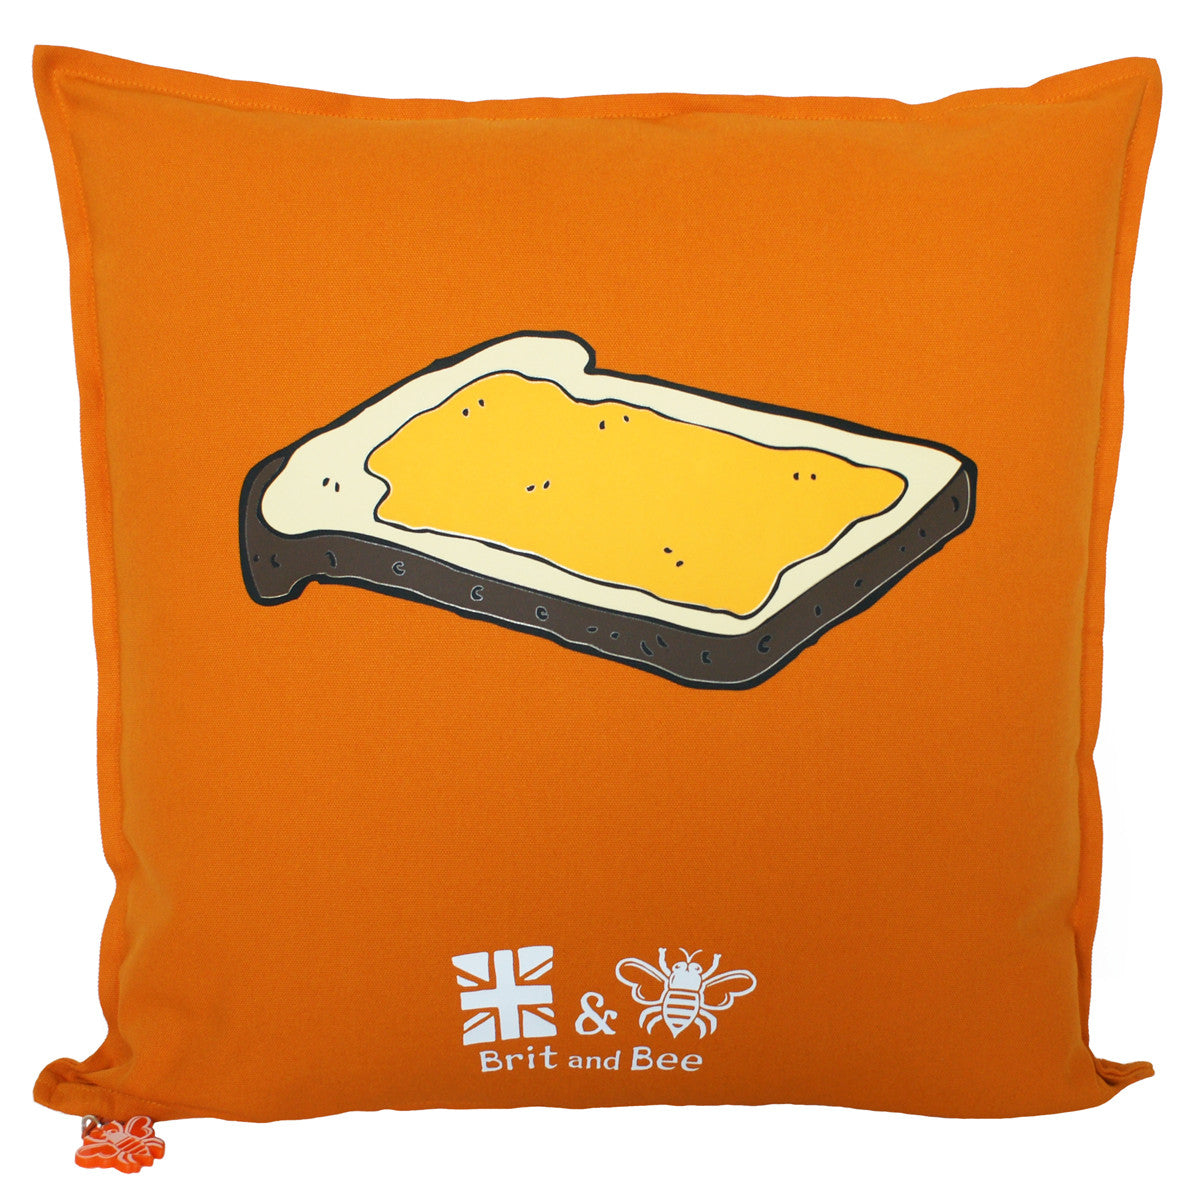 Brit and Bee Marmalade and Toast Throw Pillow - BACK